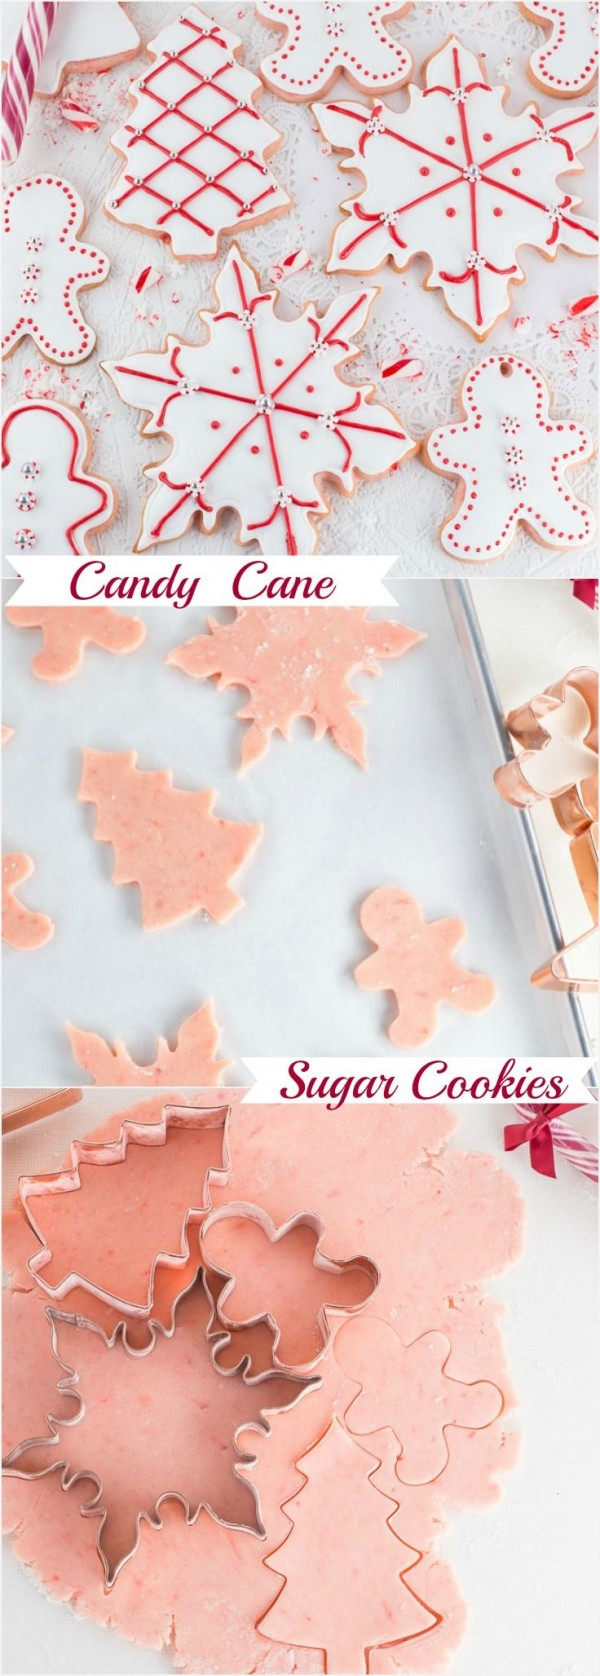 Get the recipe Candy Cane Sugar Cookies @recipes_to_go